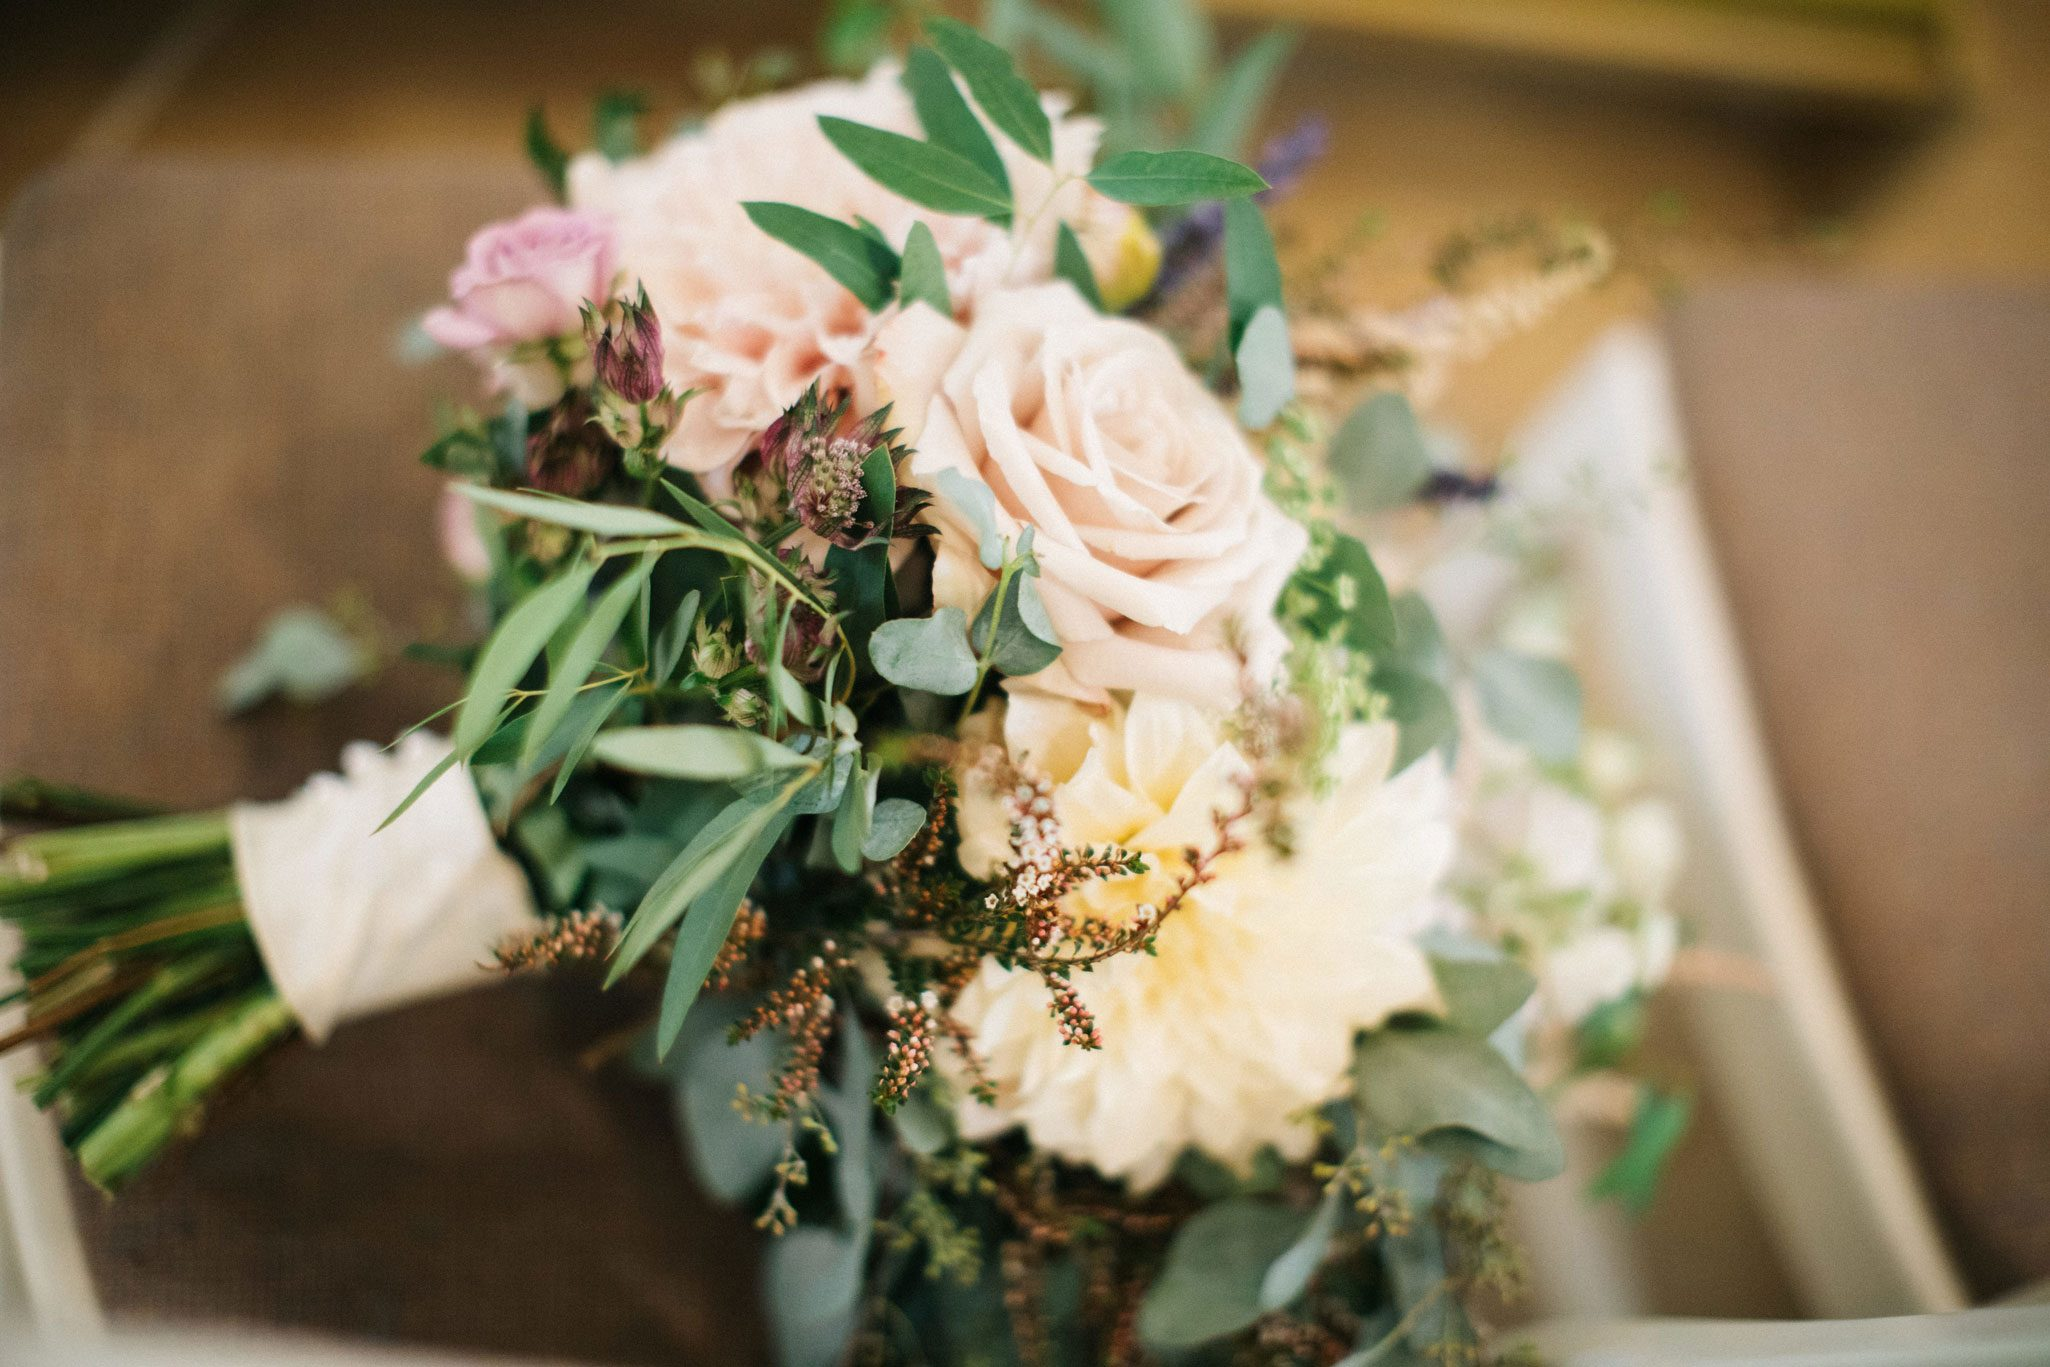 Boquet for a Romantic Garden Wedding in Durango, Colorado